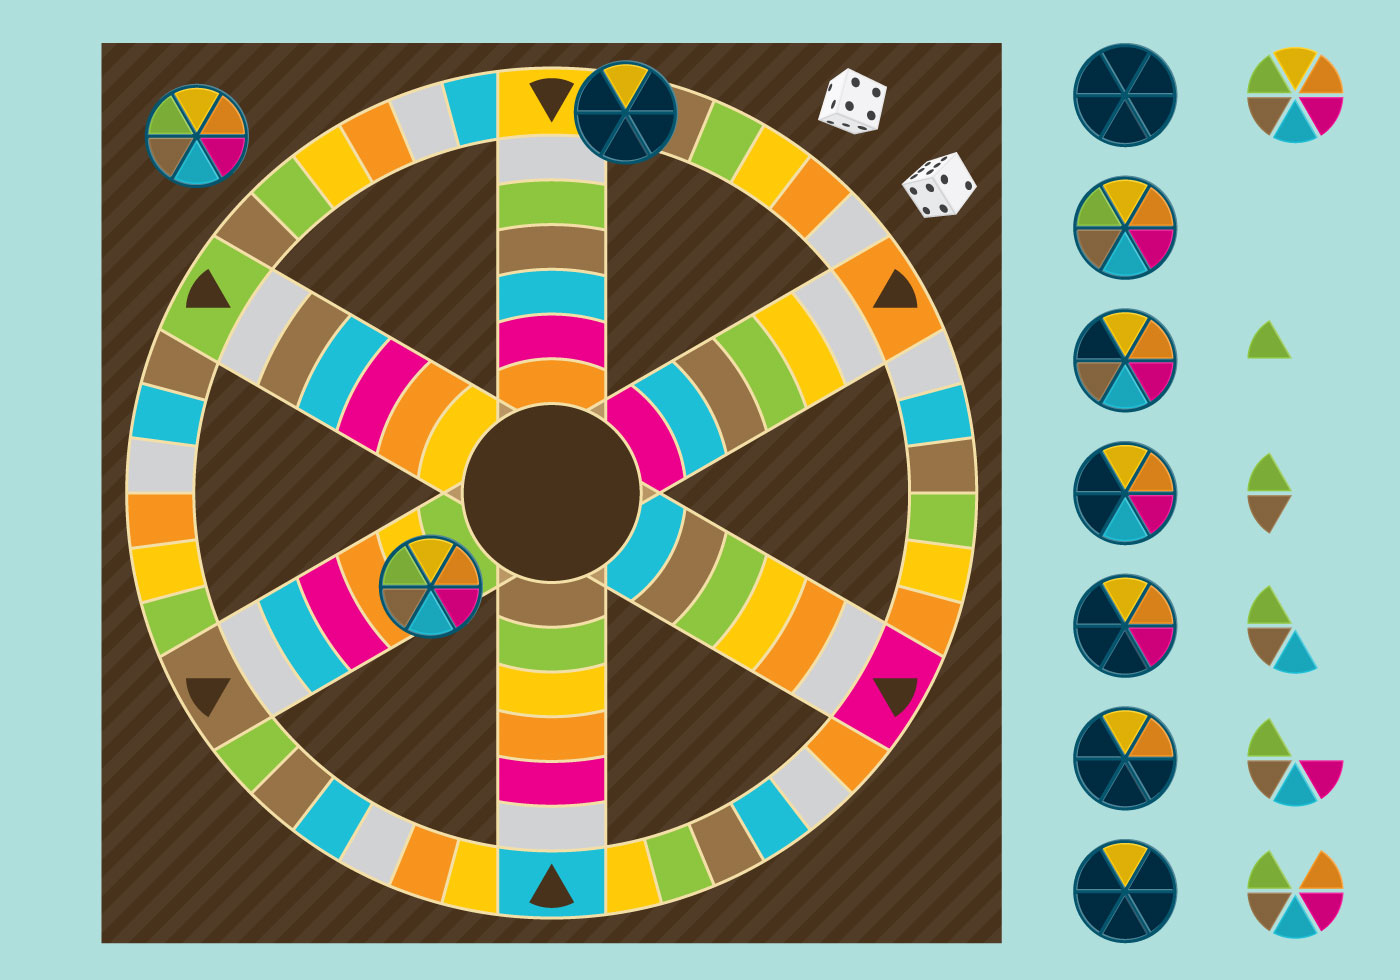 Vector Drawing Lines Games : Trivia board game download free vector art stock